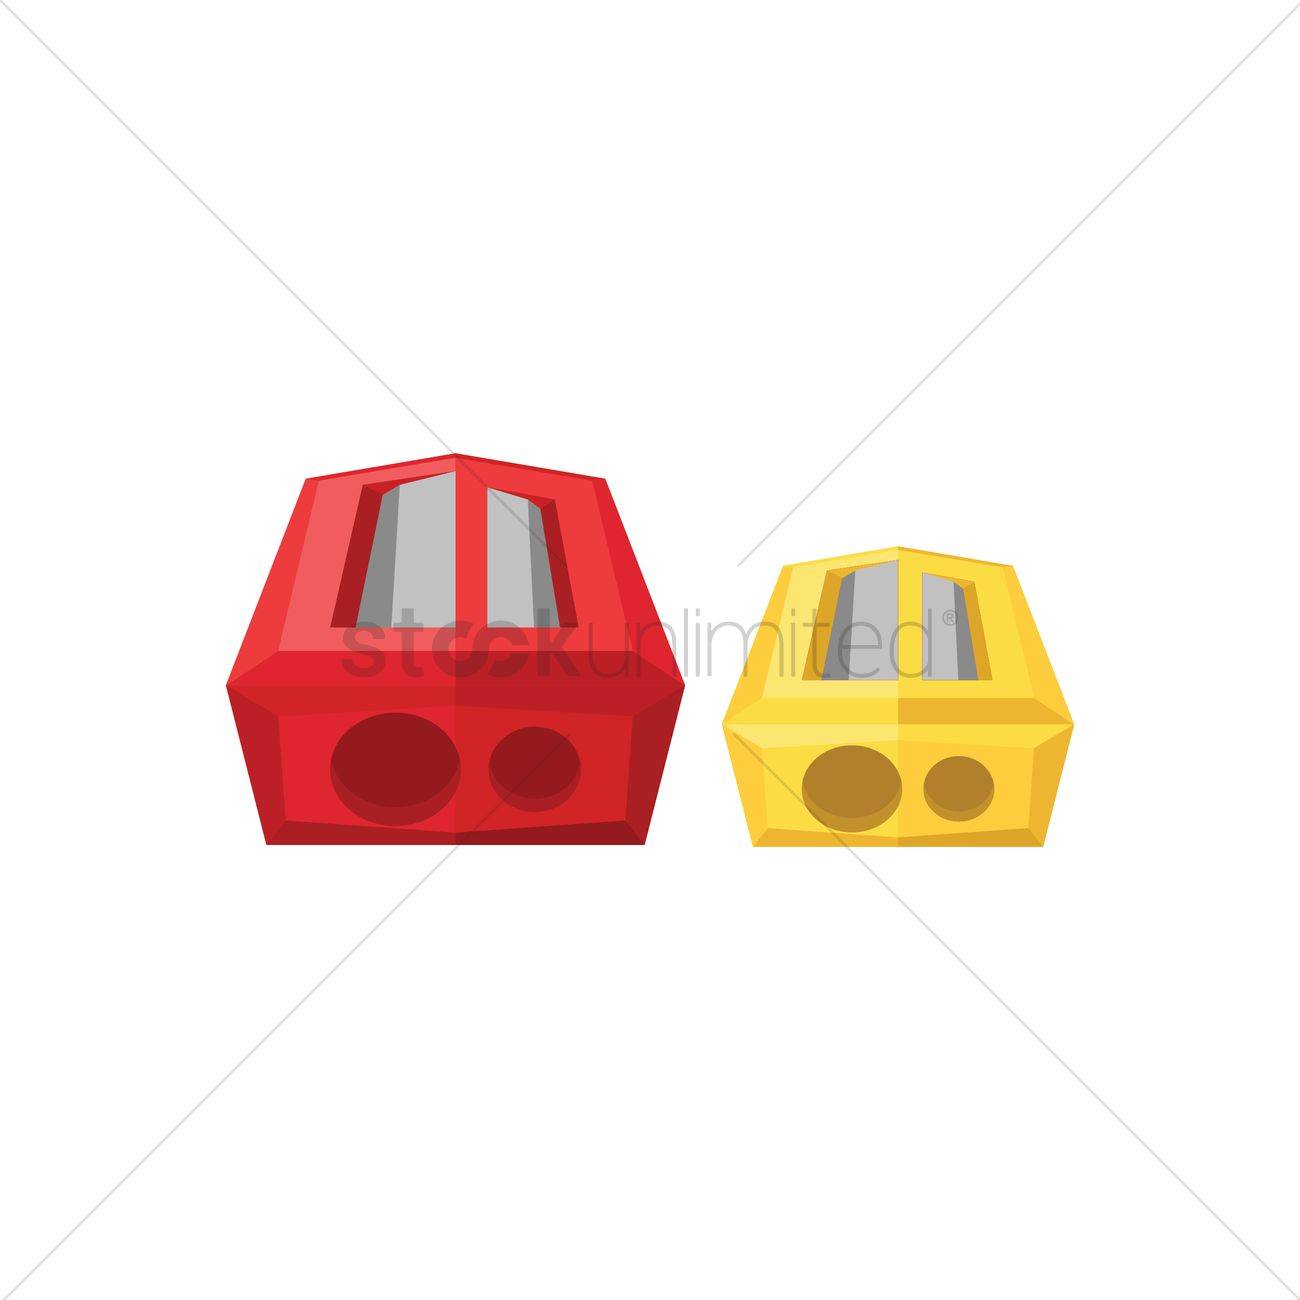 Pencil vector image stockunlimited. Sharpener clipart yellow banner royalty free